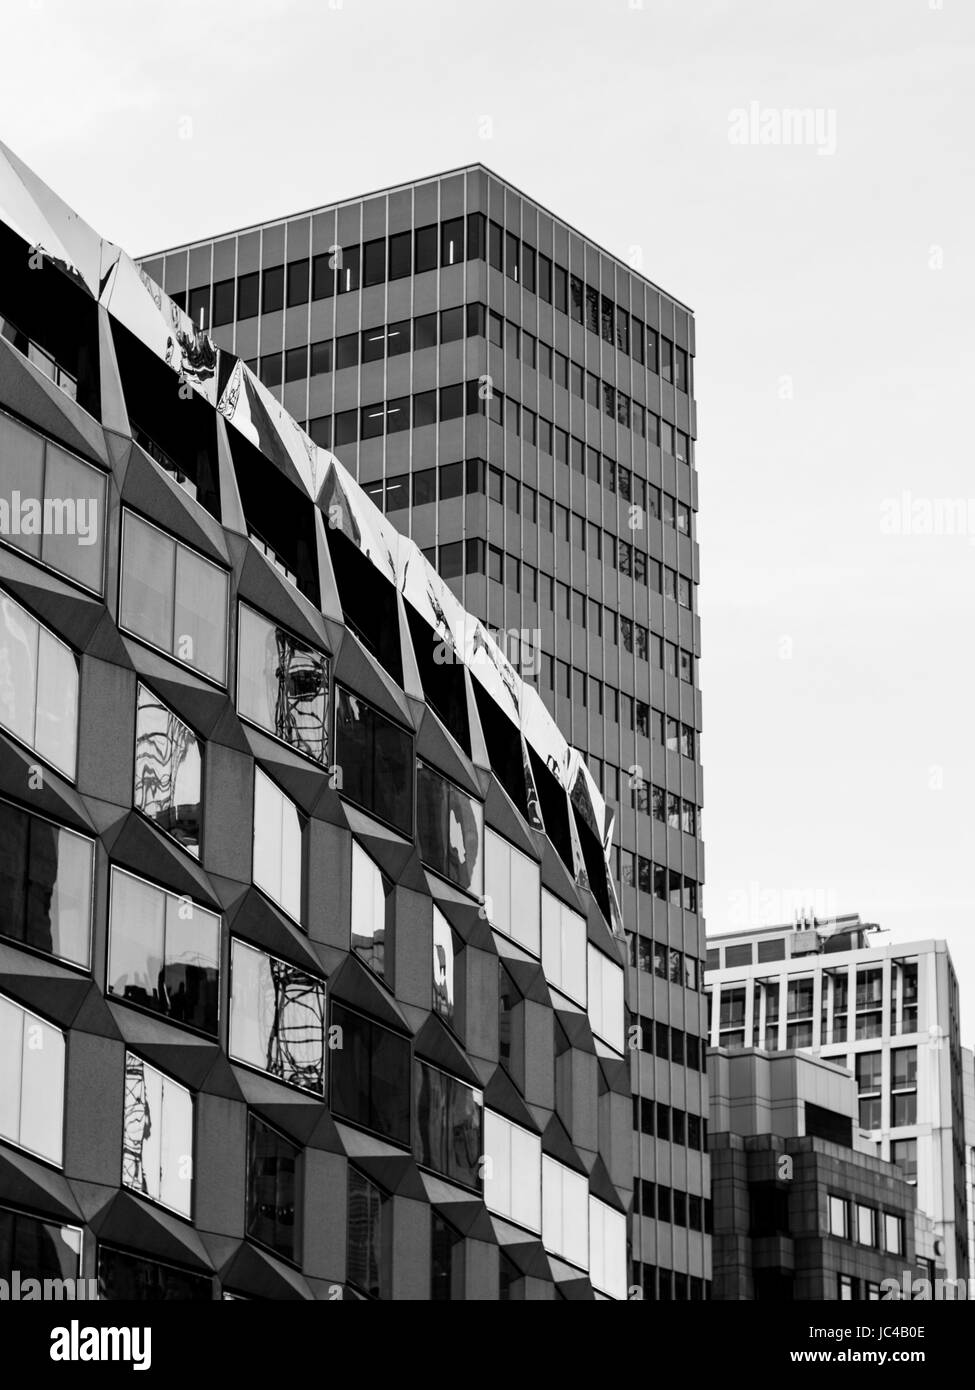 Old and new buildings jostle for space in central London - Stock Image